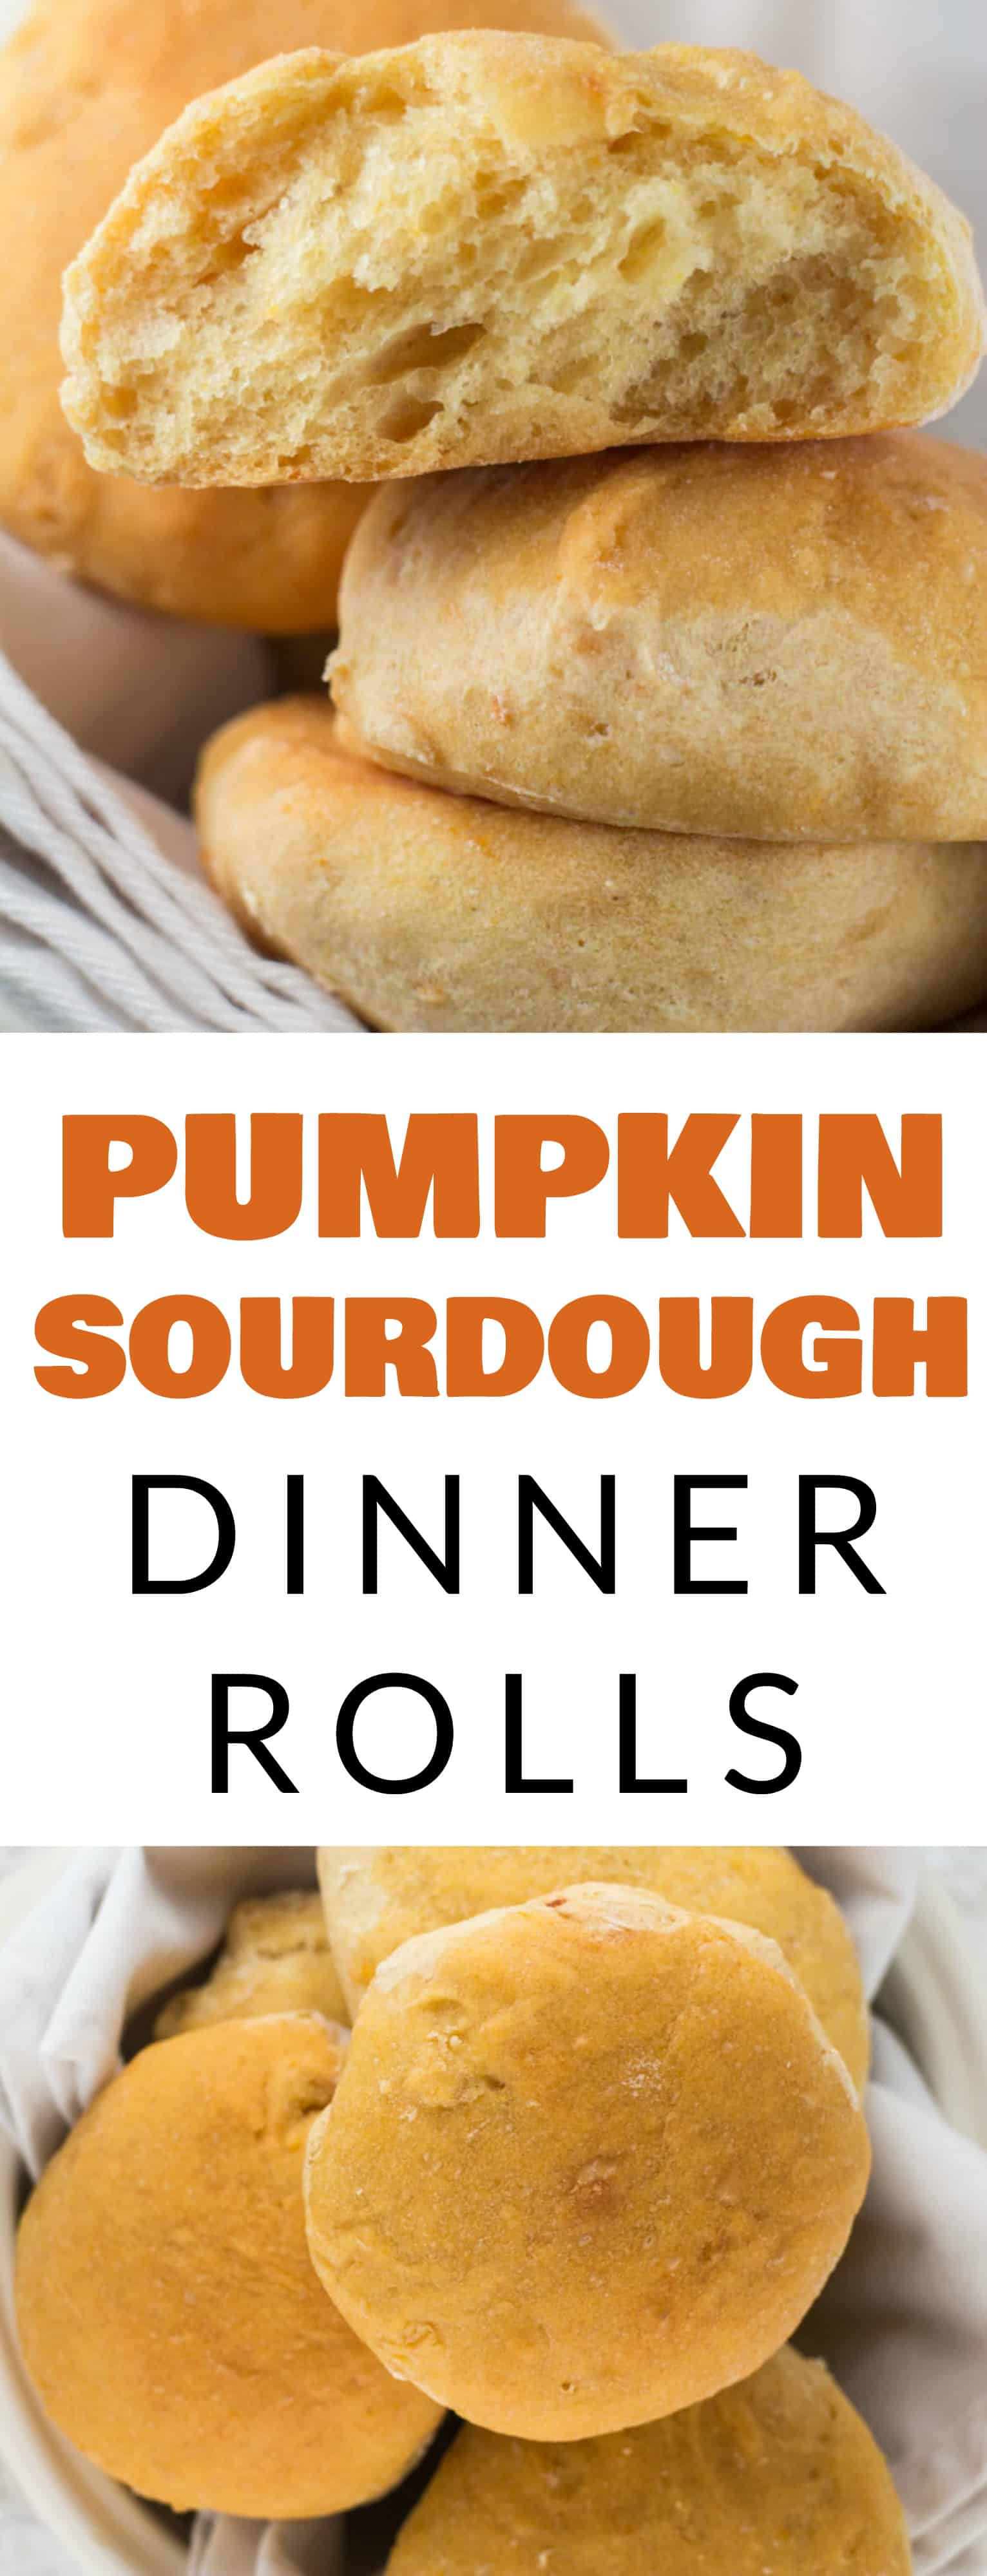 EASY and FLUFFY Sourdough Pumpkin Dinner Rolls recipe! These moist homemade rolls are quick to make!  Make these to serve to your families at Thanksgiving and holiday dinners.